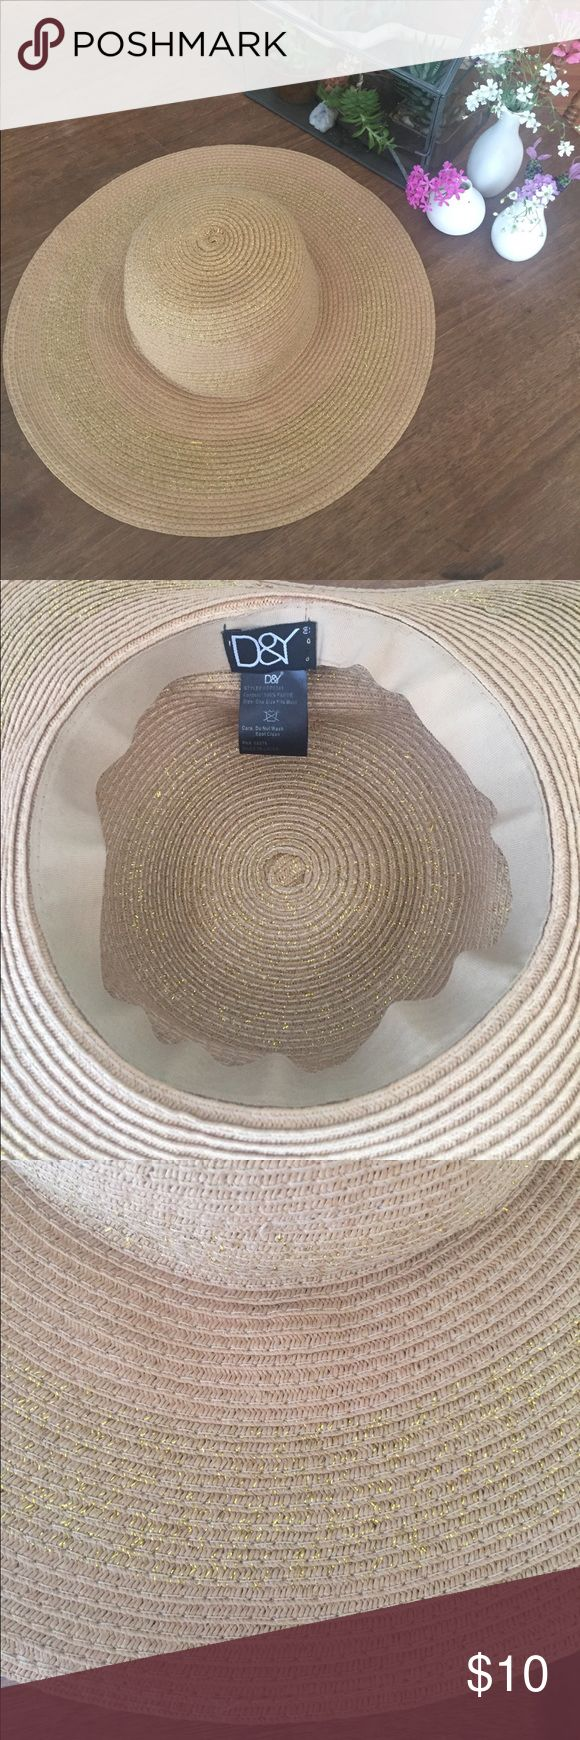 Wide brim straw and gold hat from Nordstrom Perfect for summer! Large stripes with subtle gold detailing. Floppy, not stiff brim. Comfortable and cute. One size fits most size. D&Y brand from Nordstrom. Nordstrom Accessories Hats